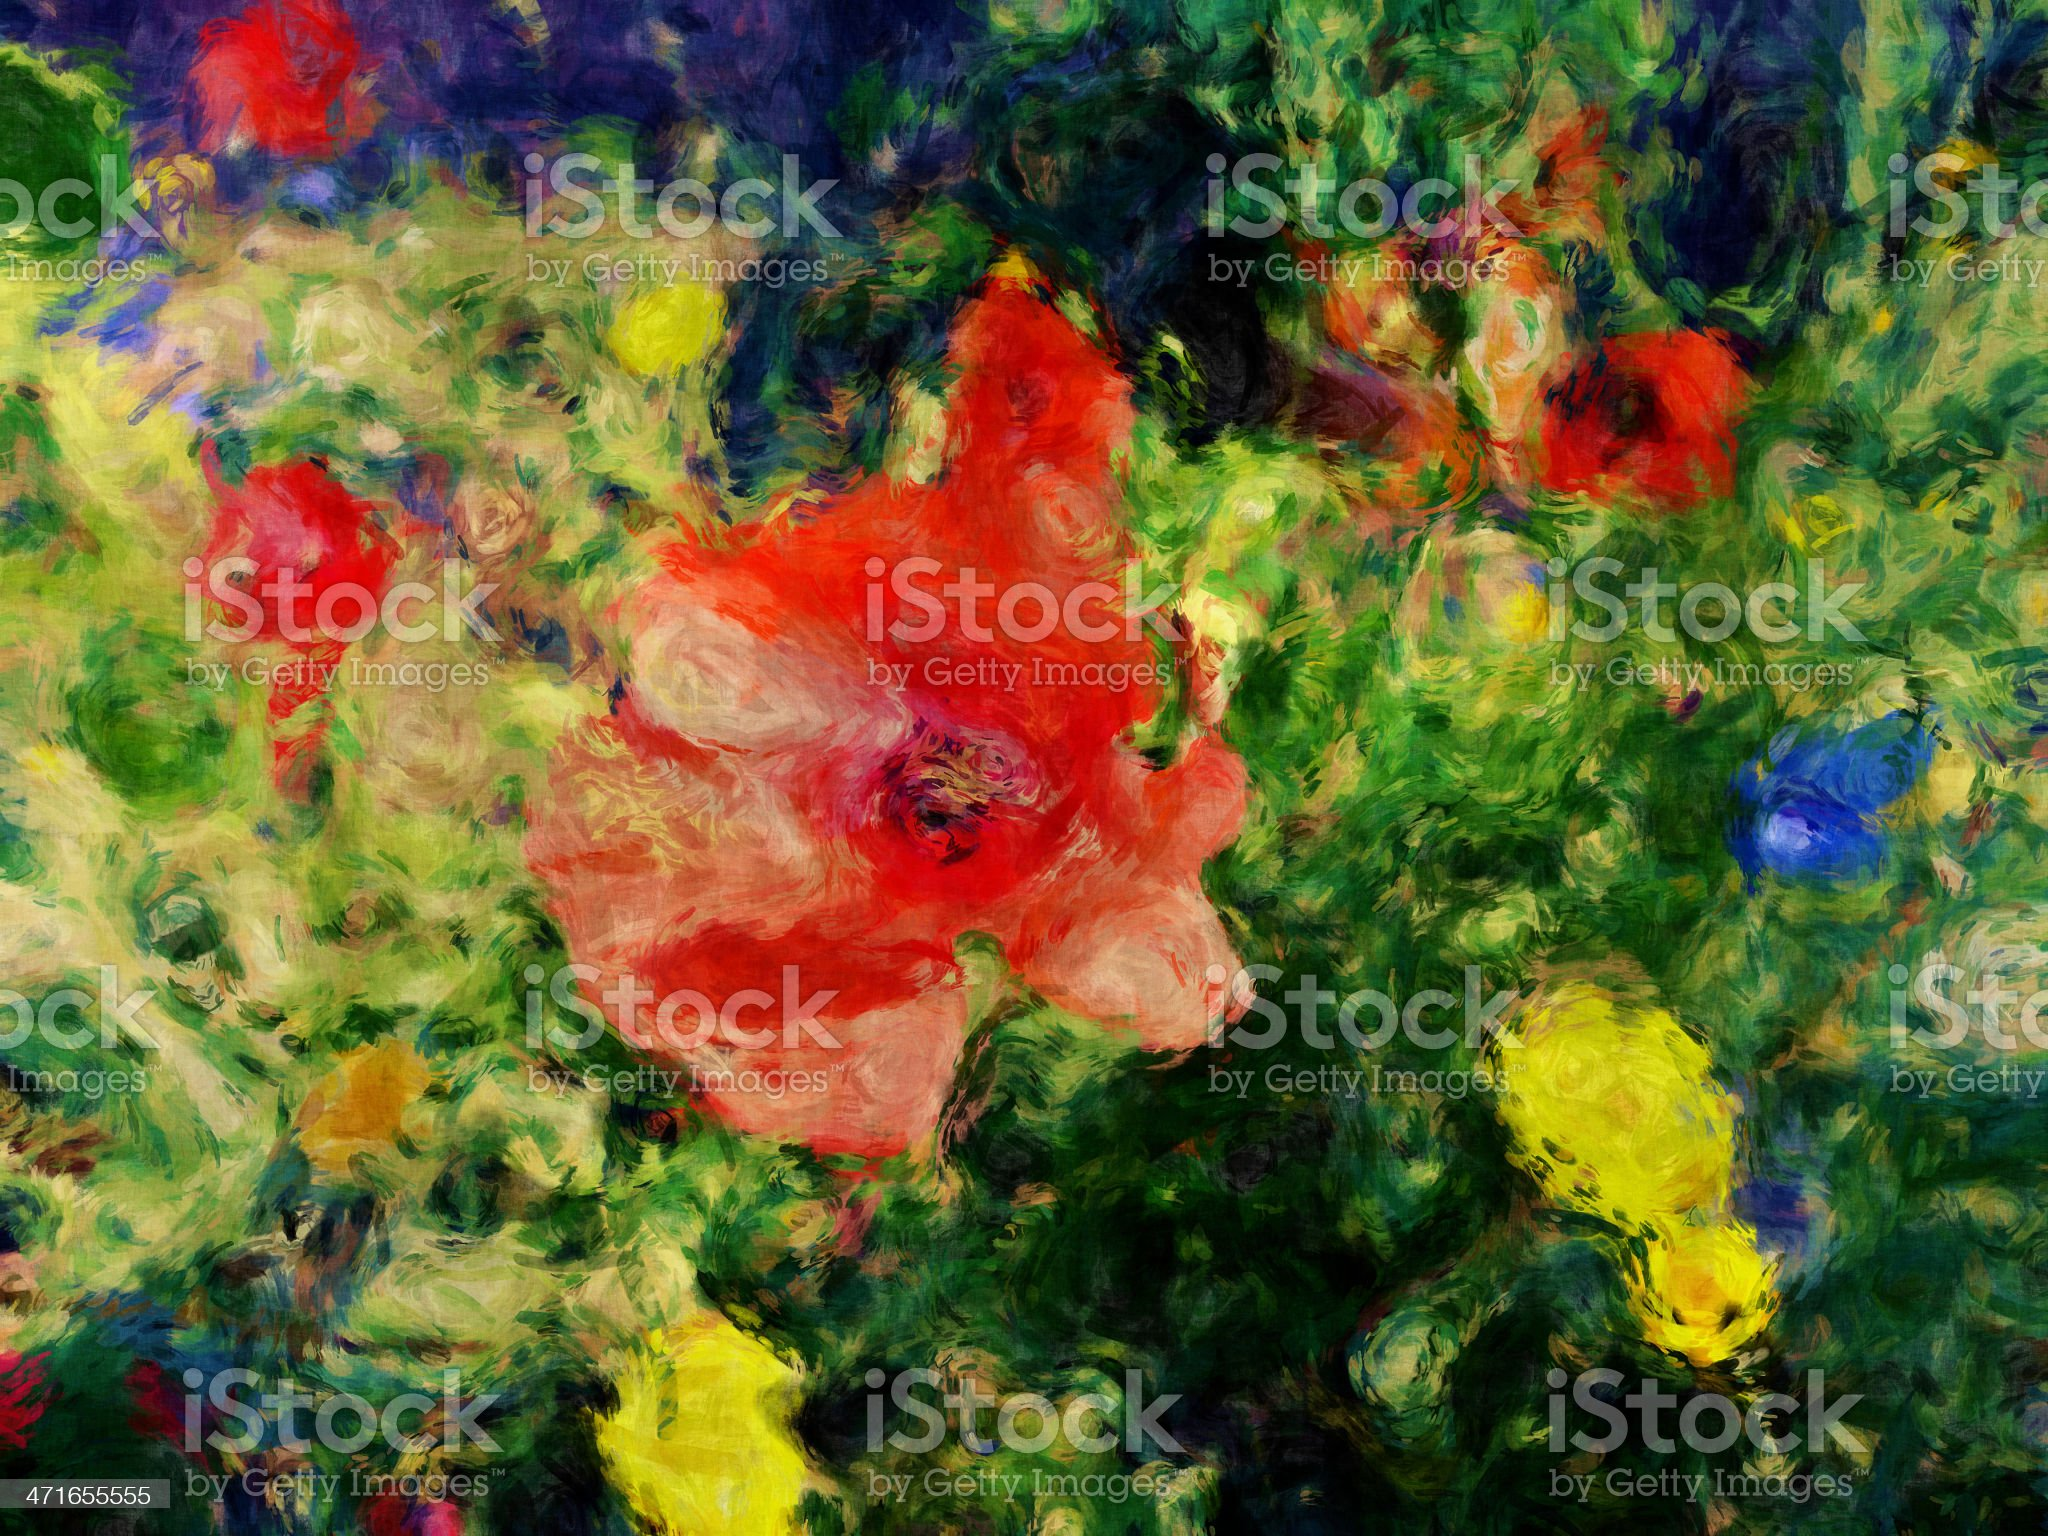 Flowers in the wild Garden royalty-free stock photo